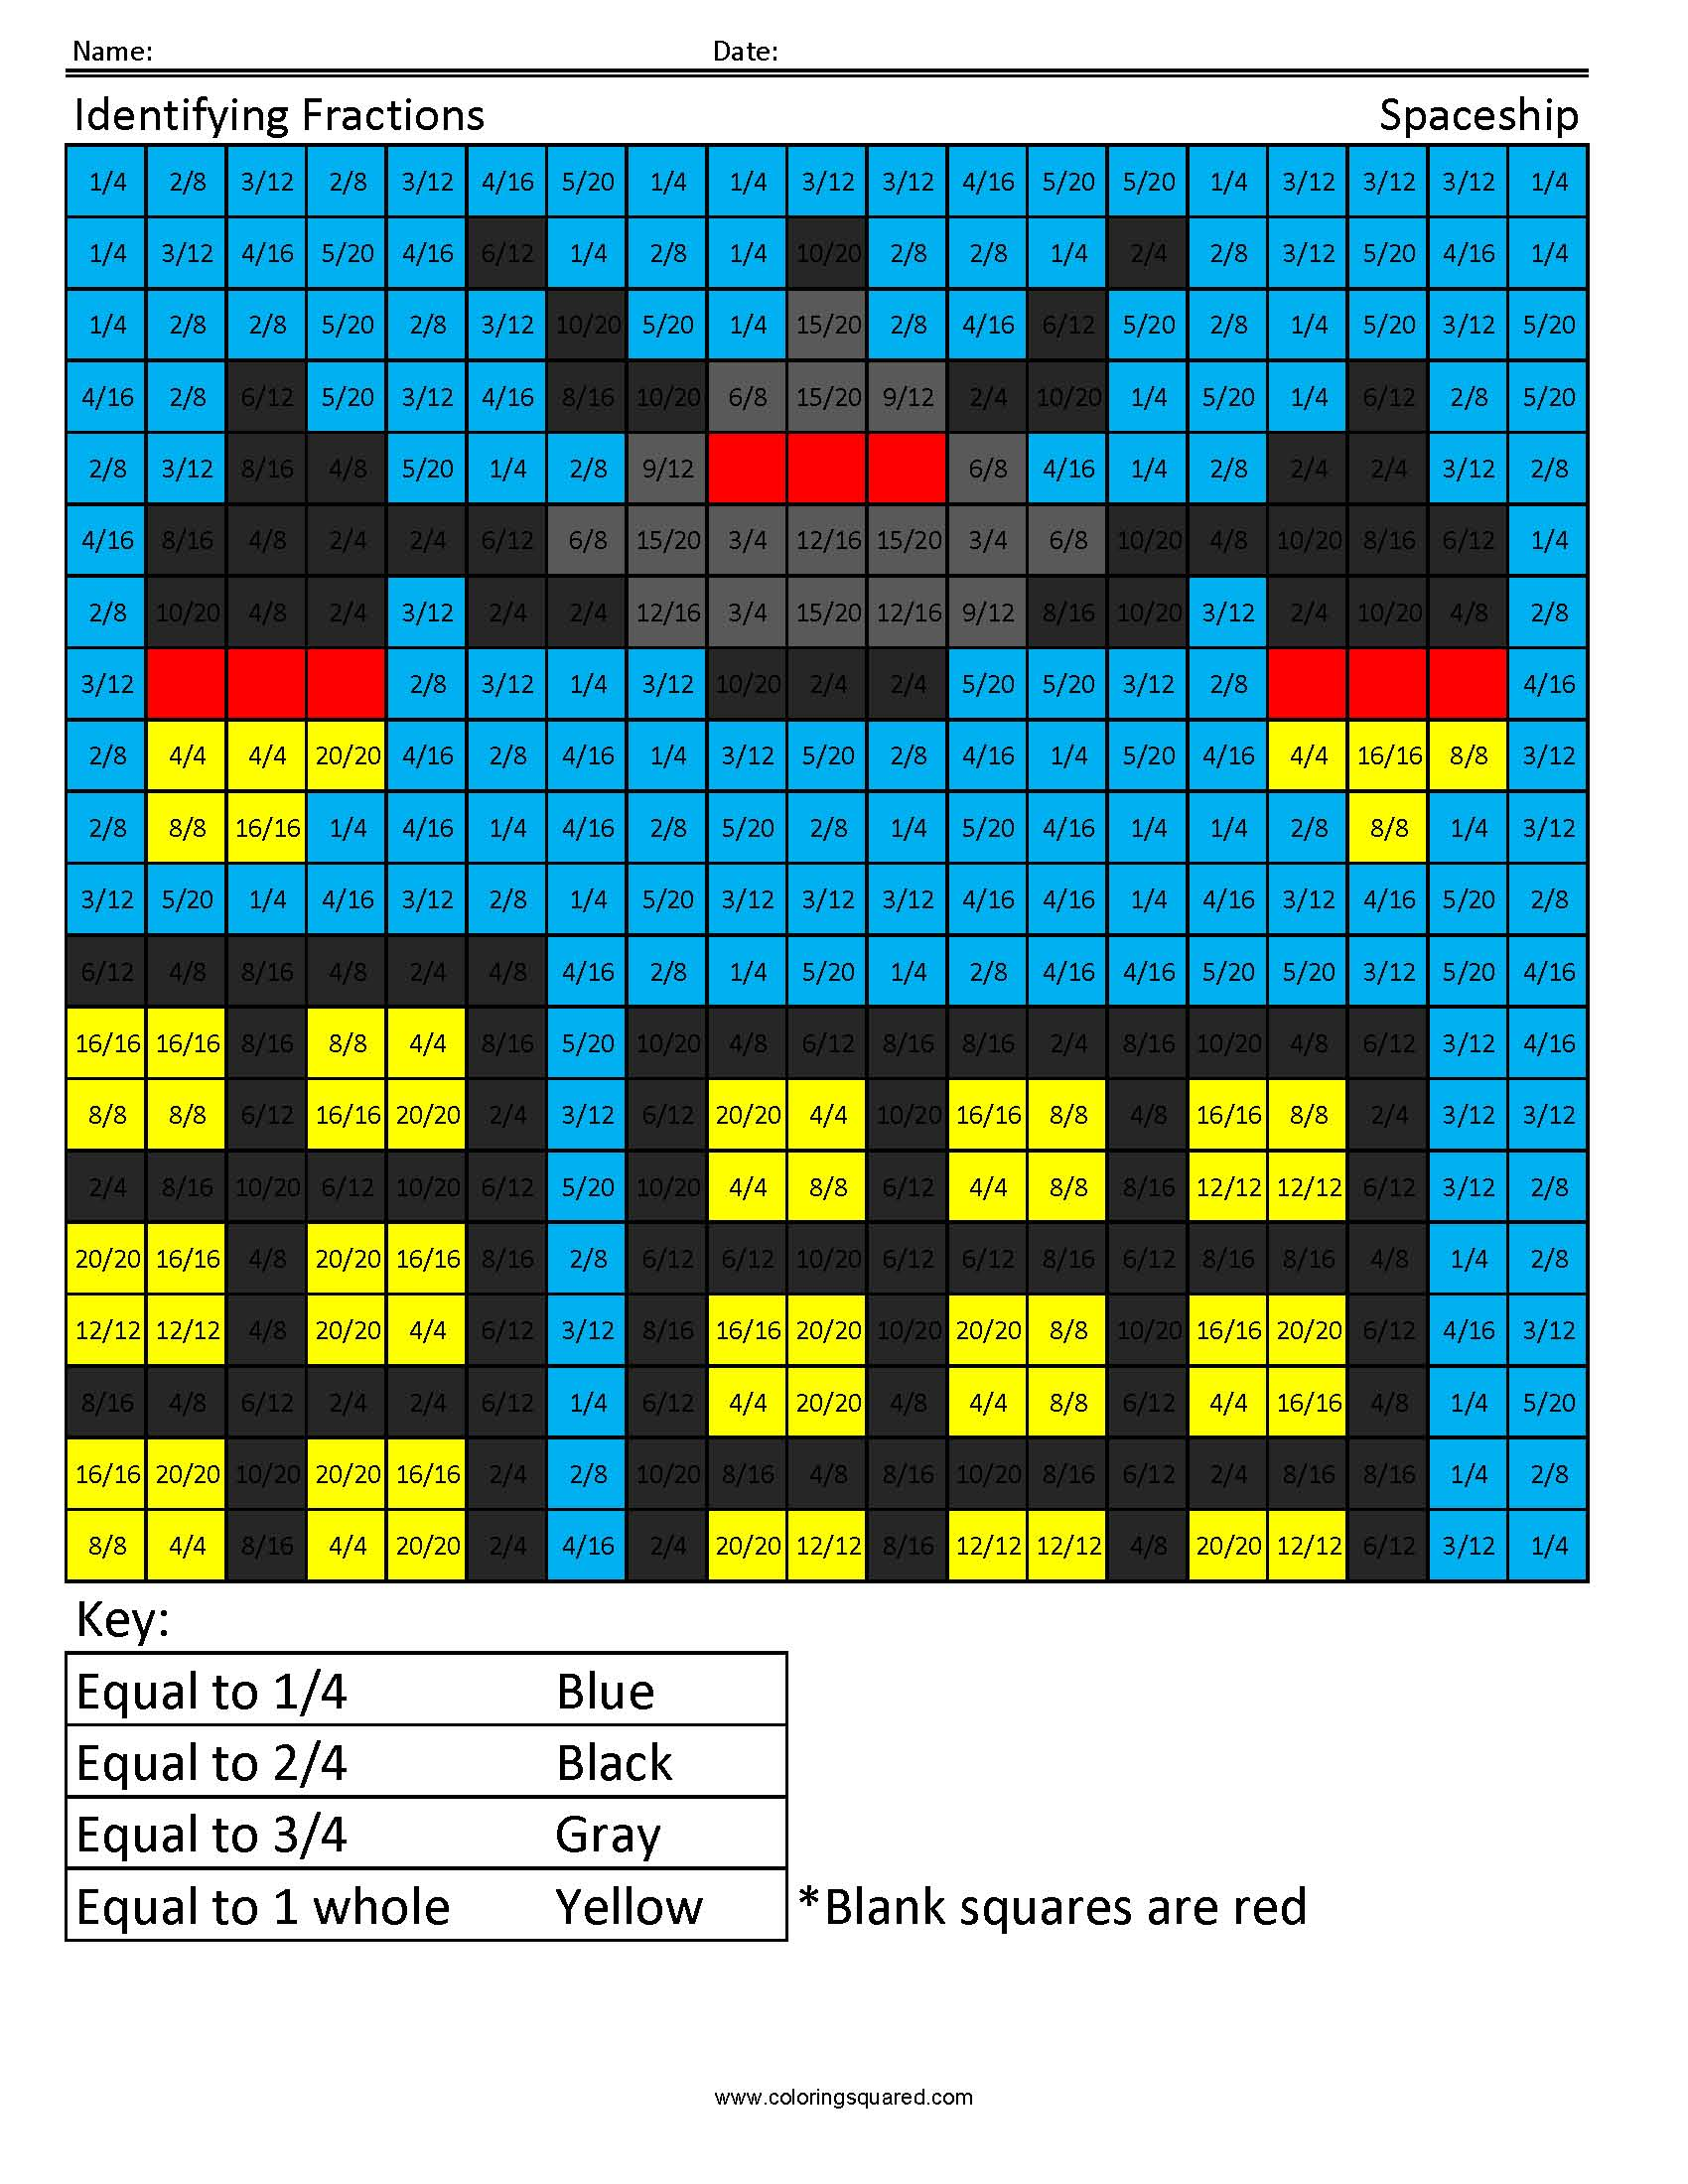 3G38 Fraction Spaceship third grade math - Coloring Squared